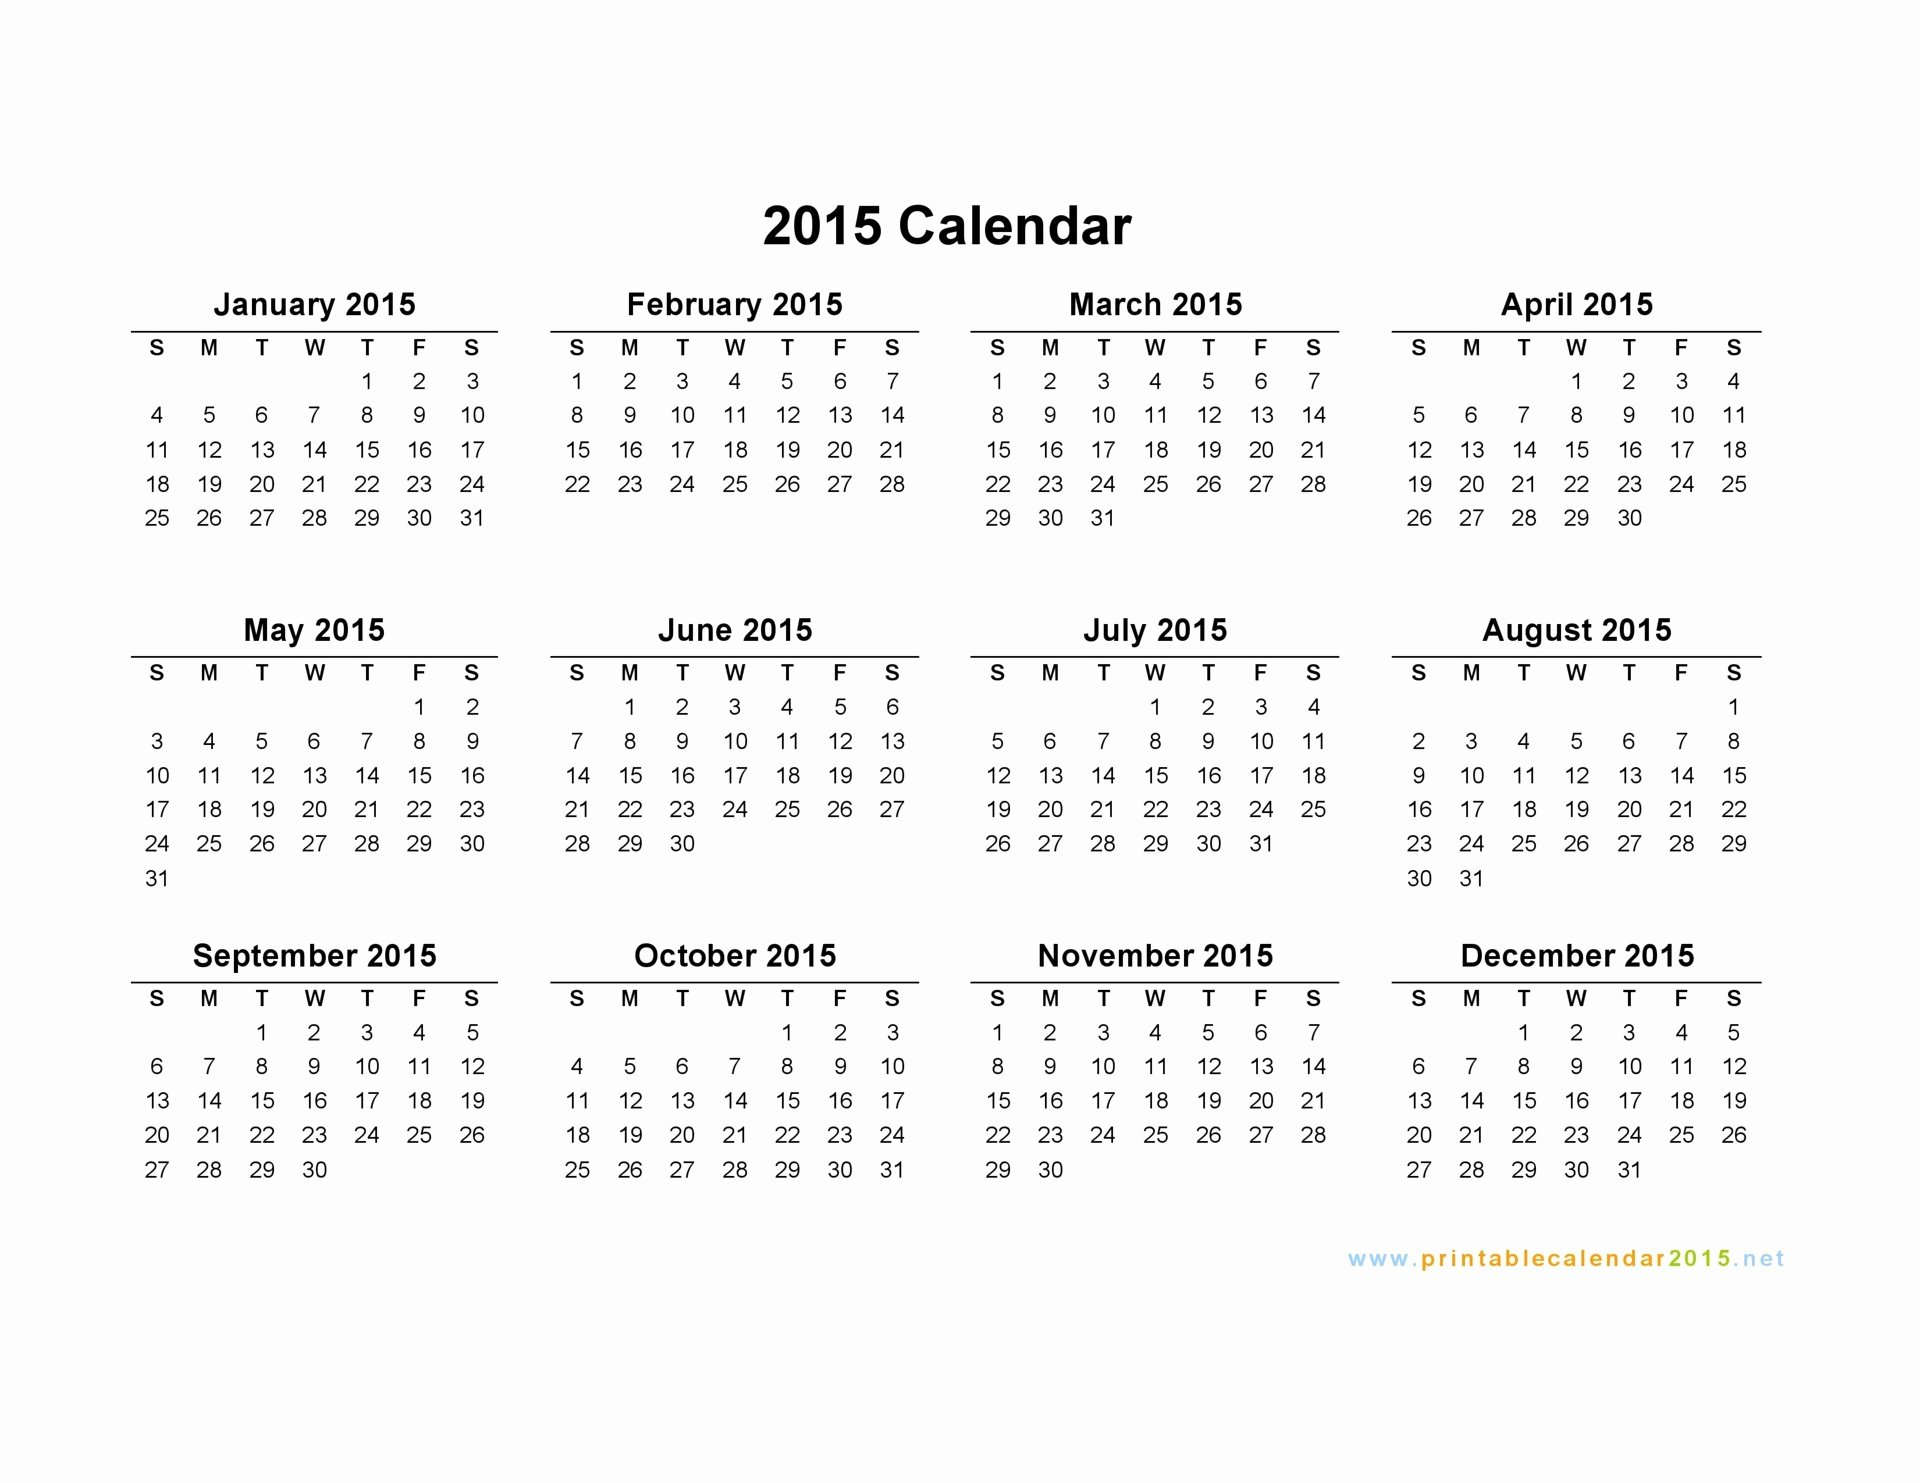 Quarterly Calendar Template 2015 New Free Printable Calendar 2015 Monthly – 2017 Printable Calendar